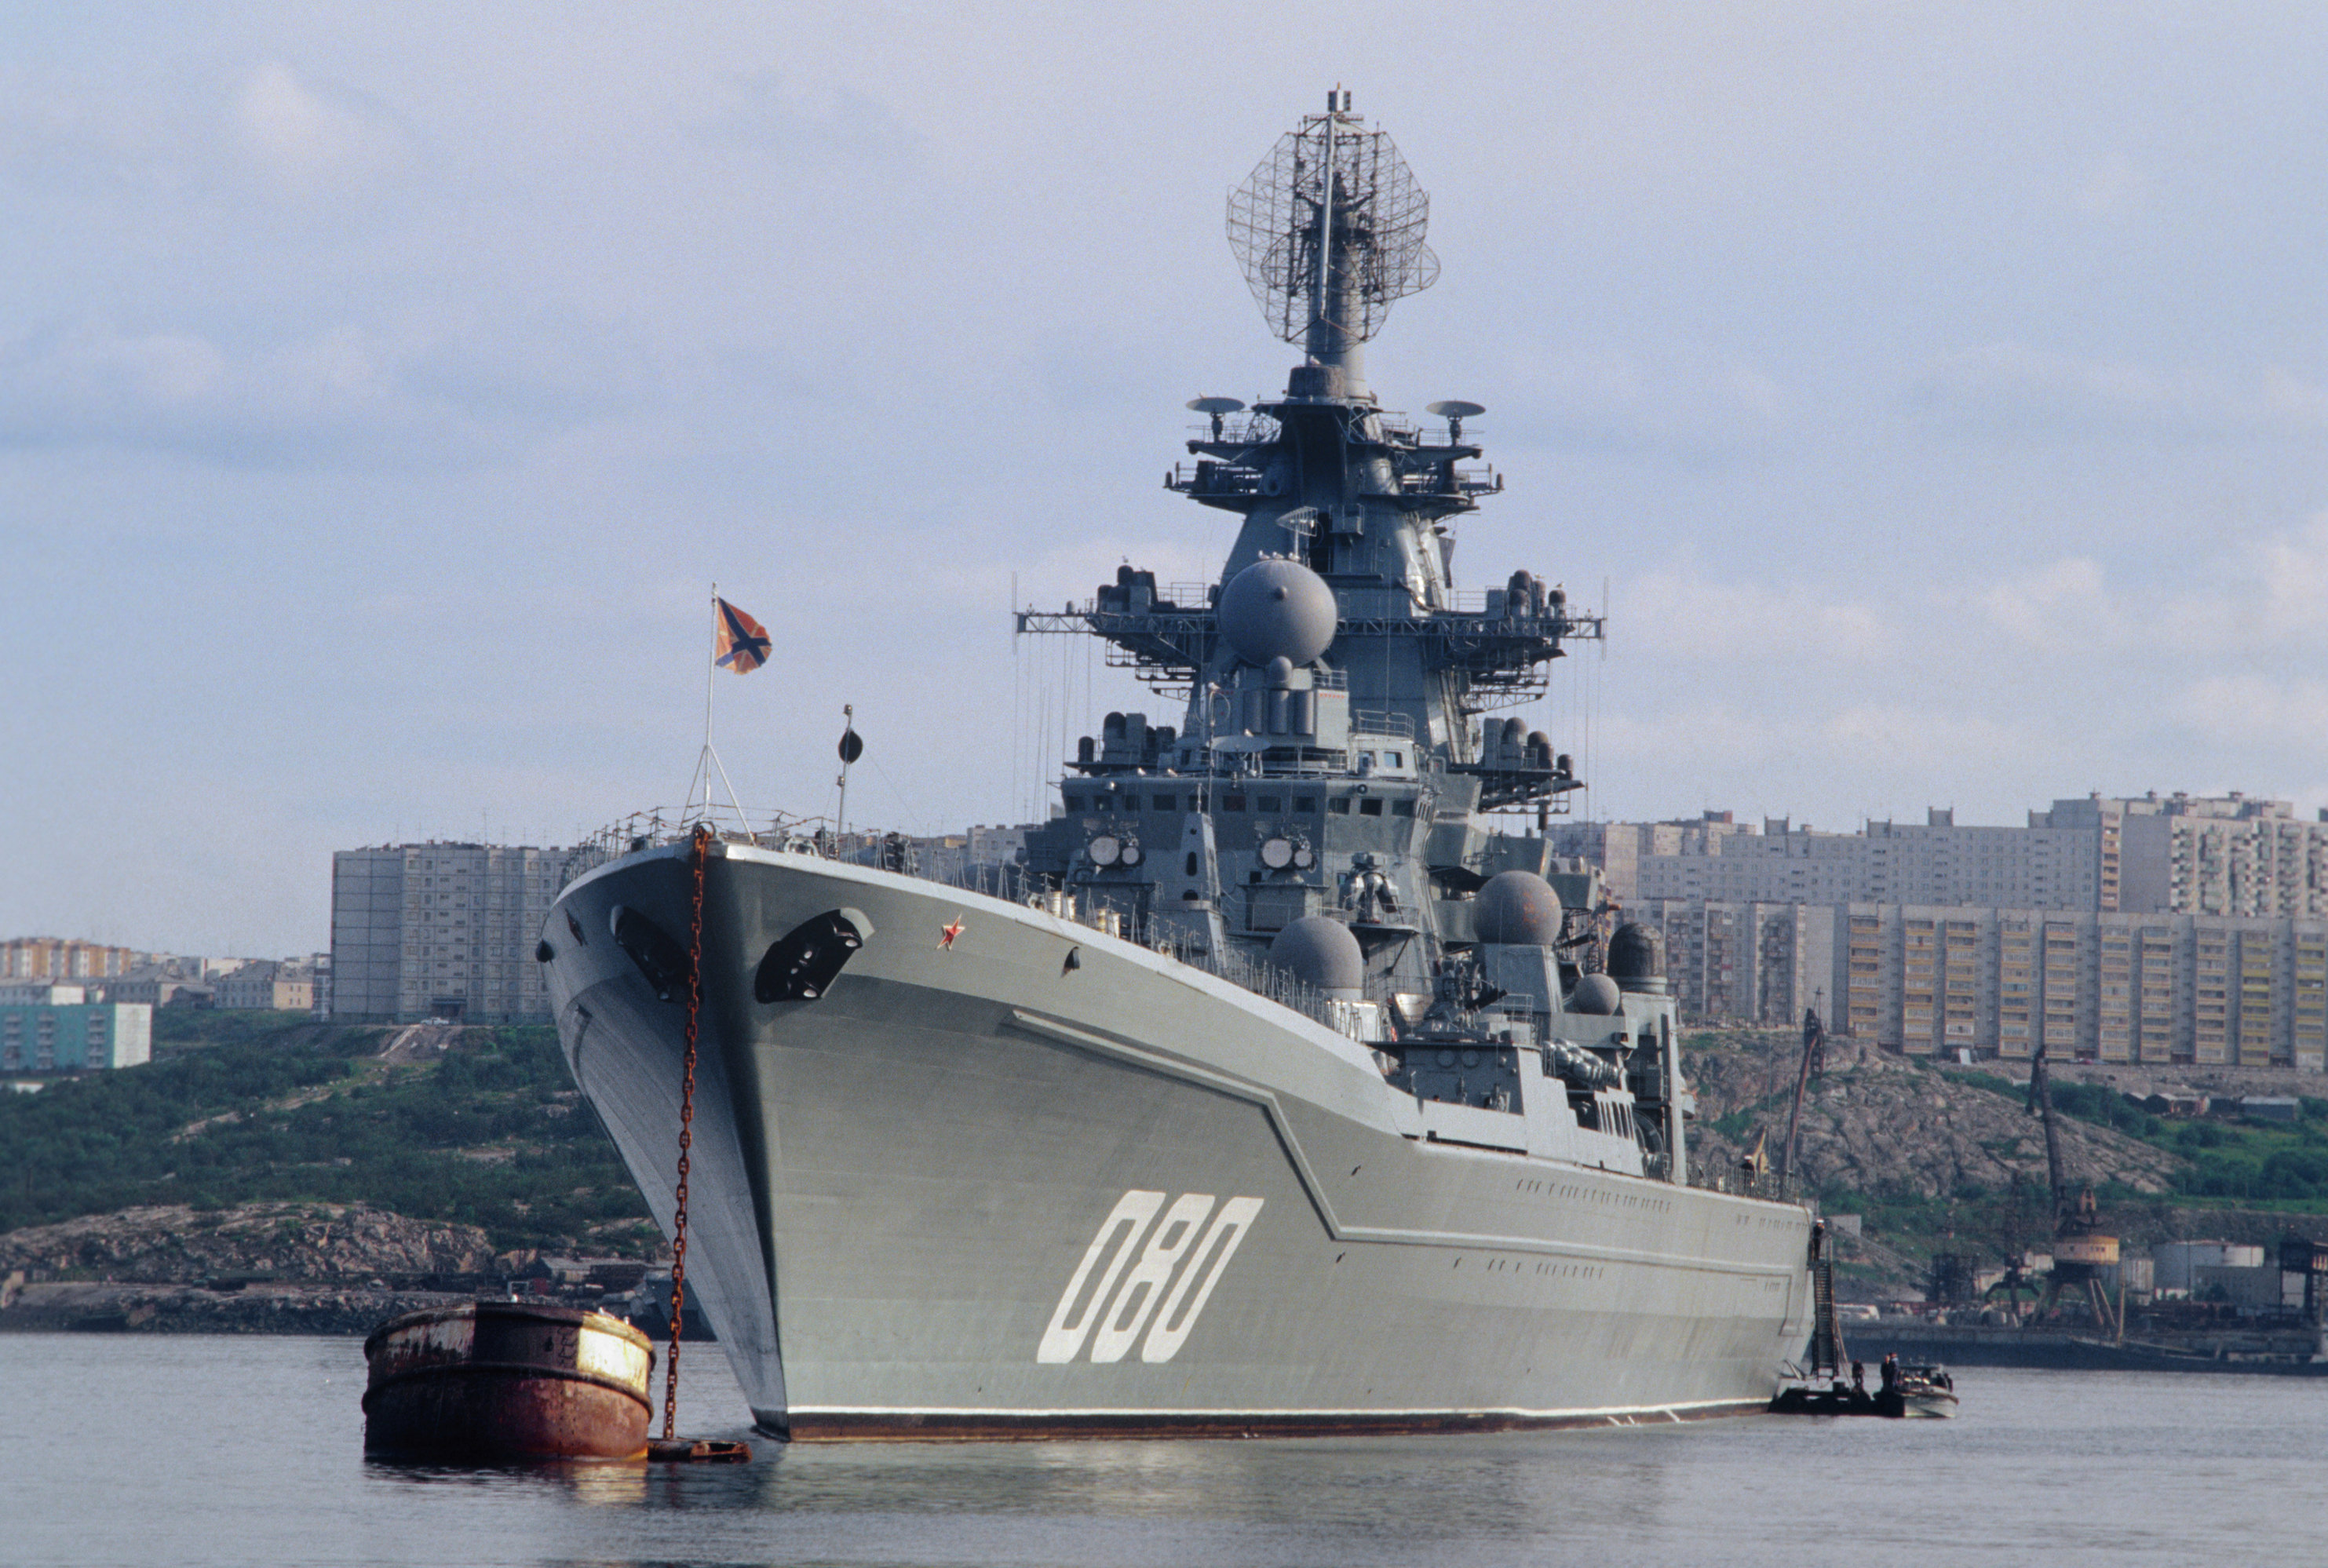 The Admiral Nakhimov nuclear missile cruisers